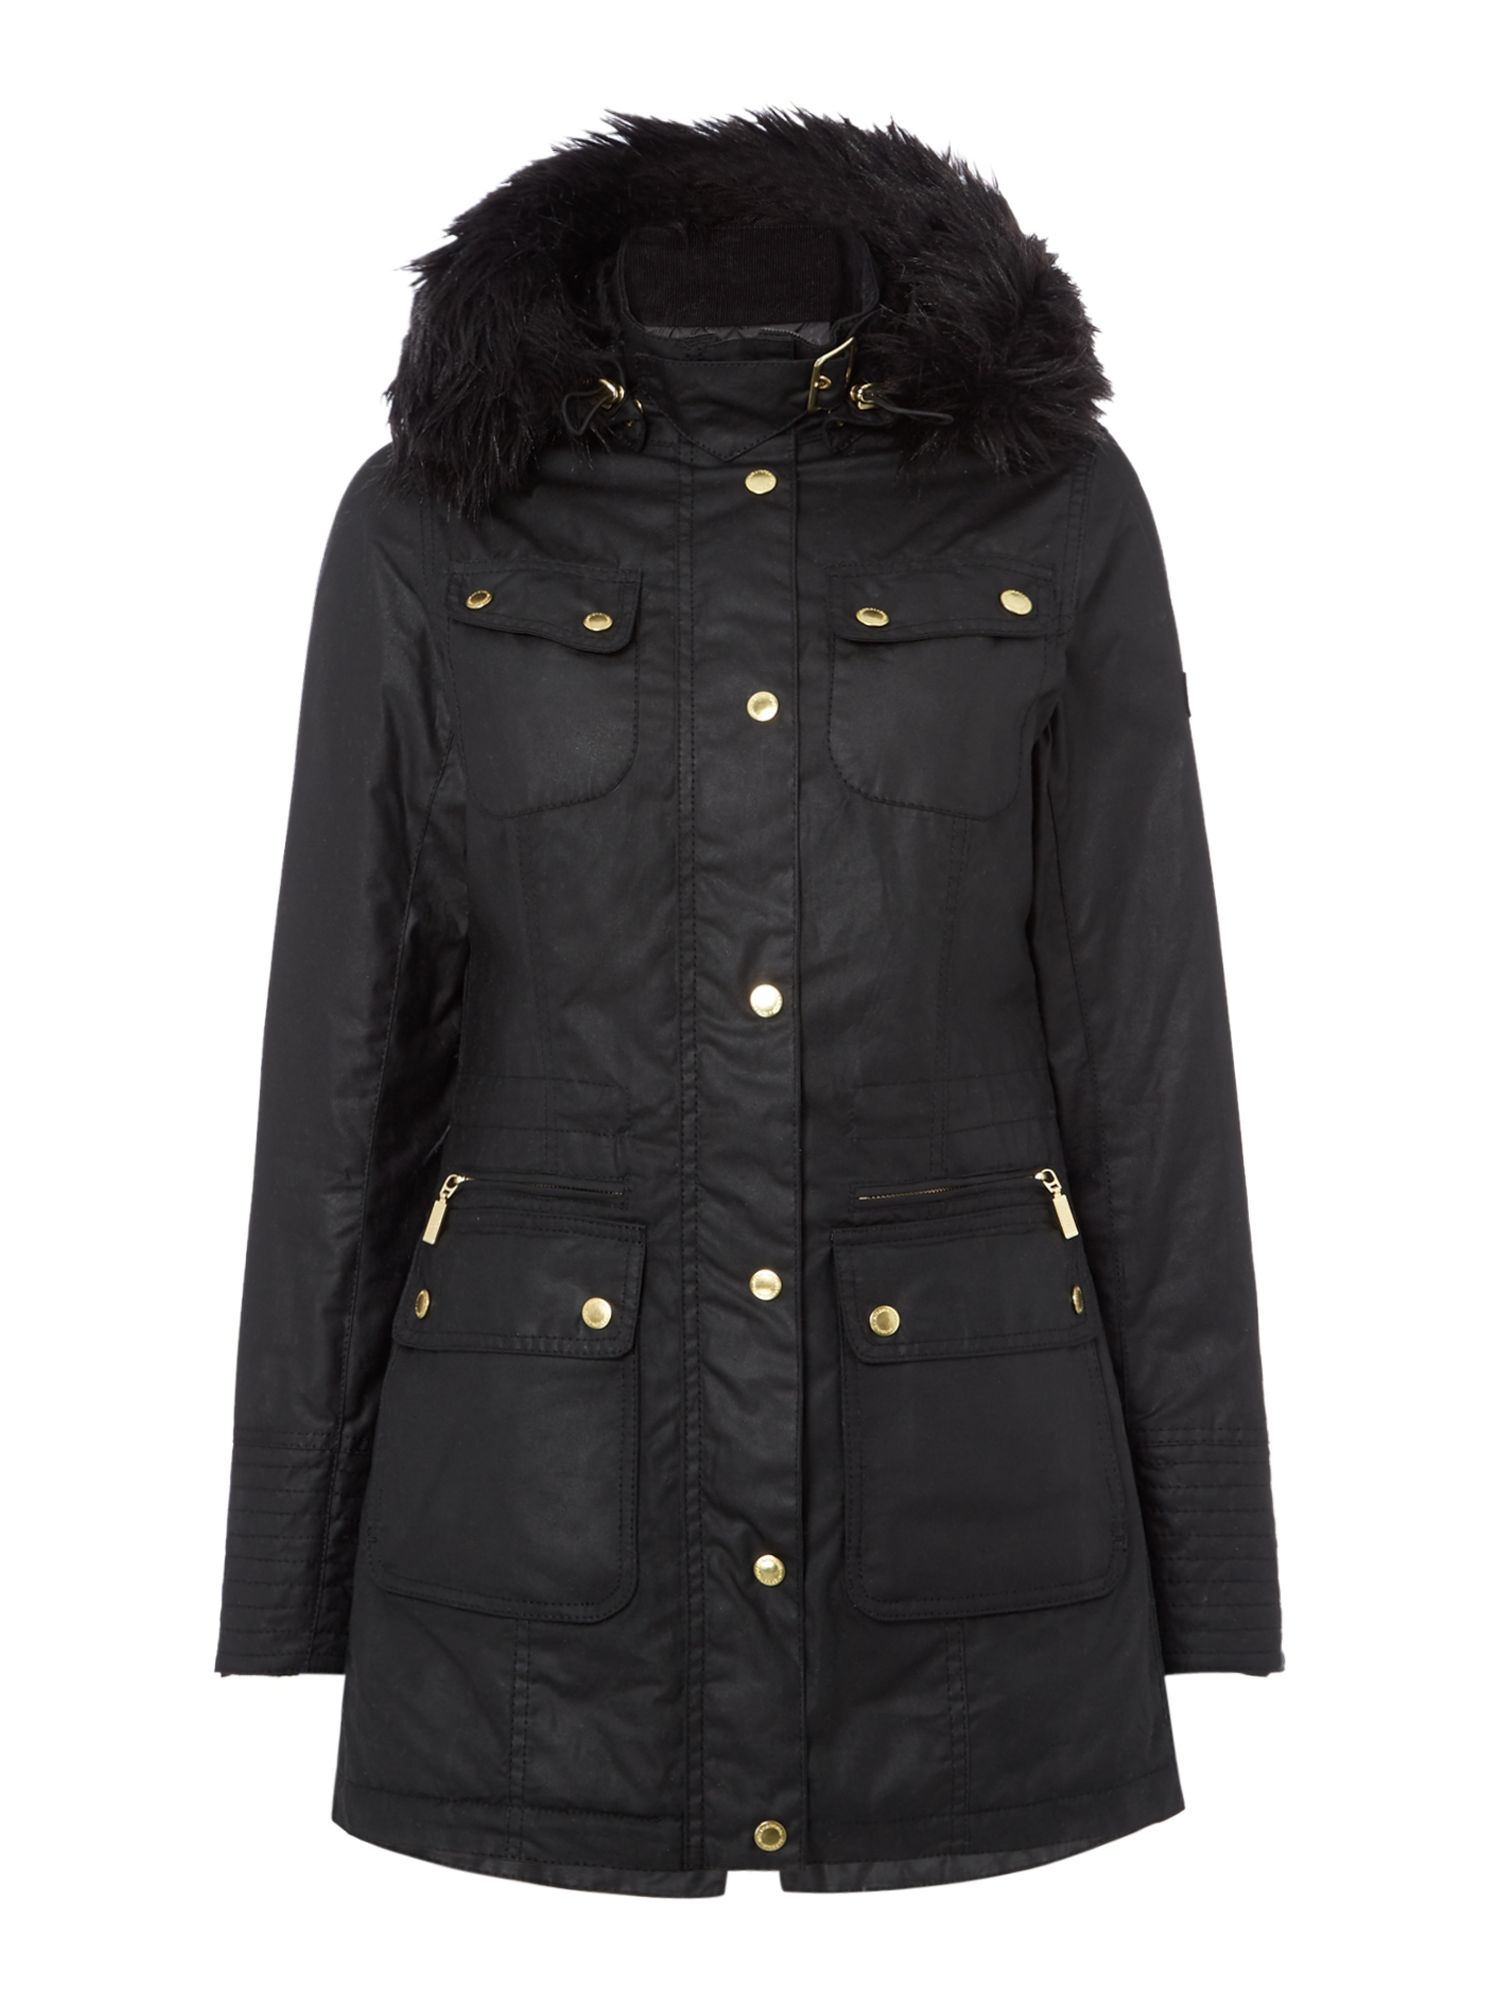 Barbour Mallory Wax Jacket with Faux Fur Hood, Black